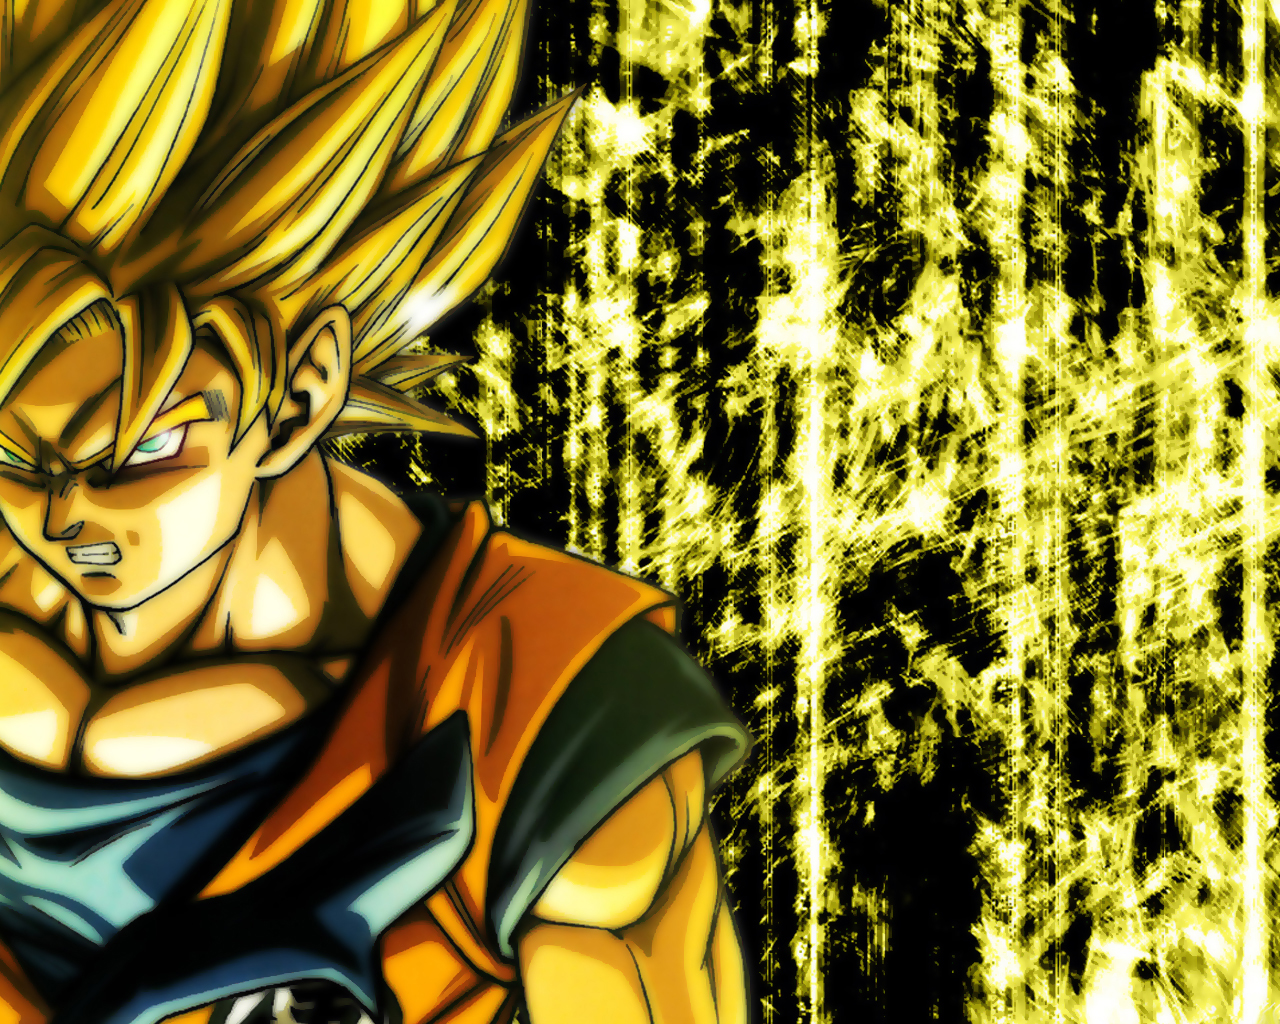 Son Goku Wallpaper  WallpaperSafari